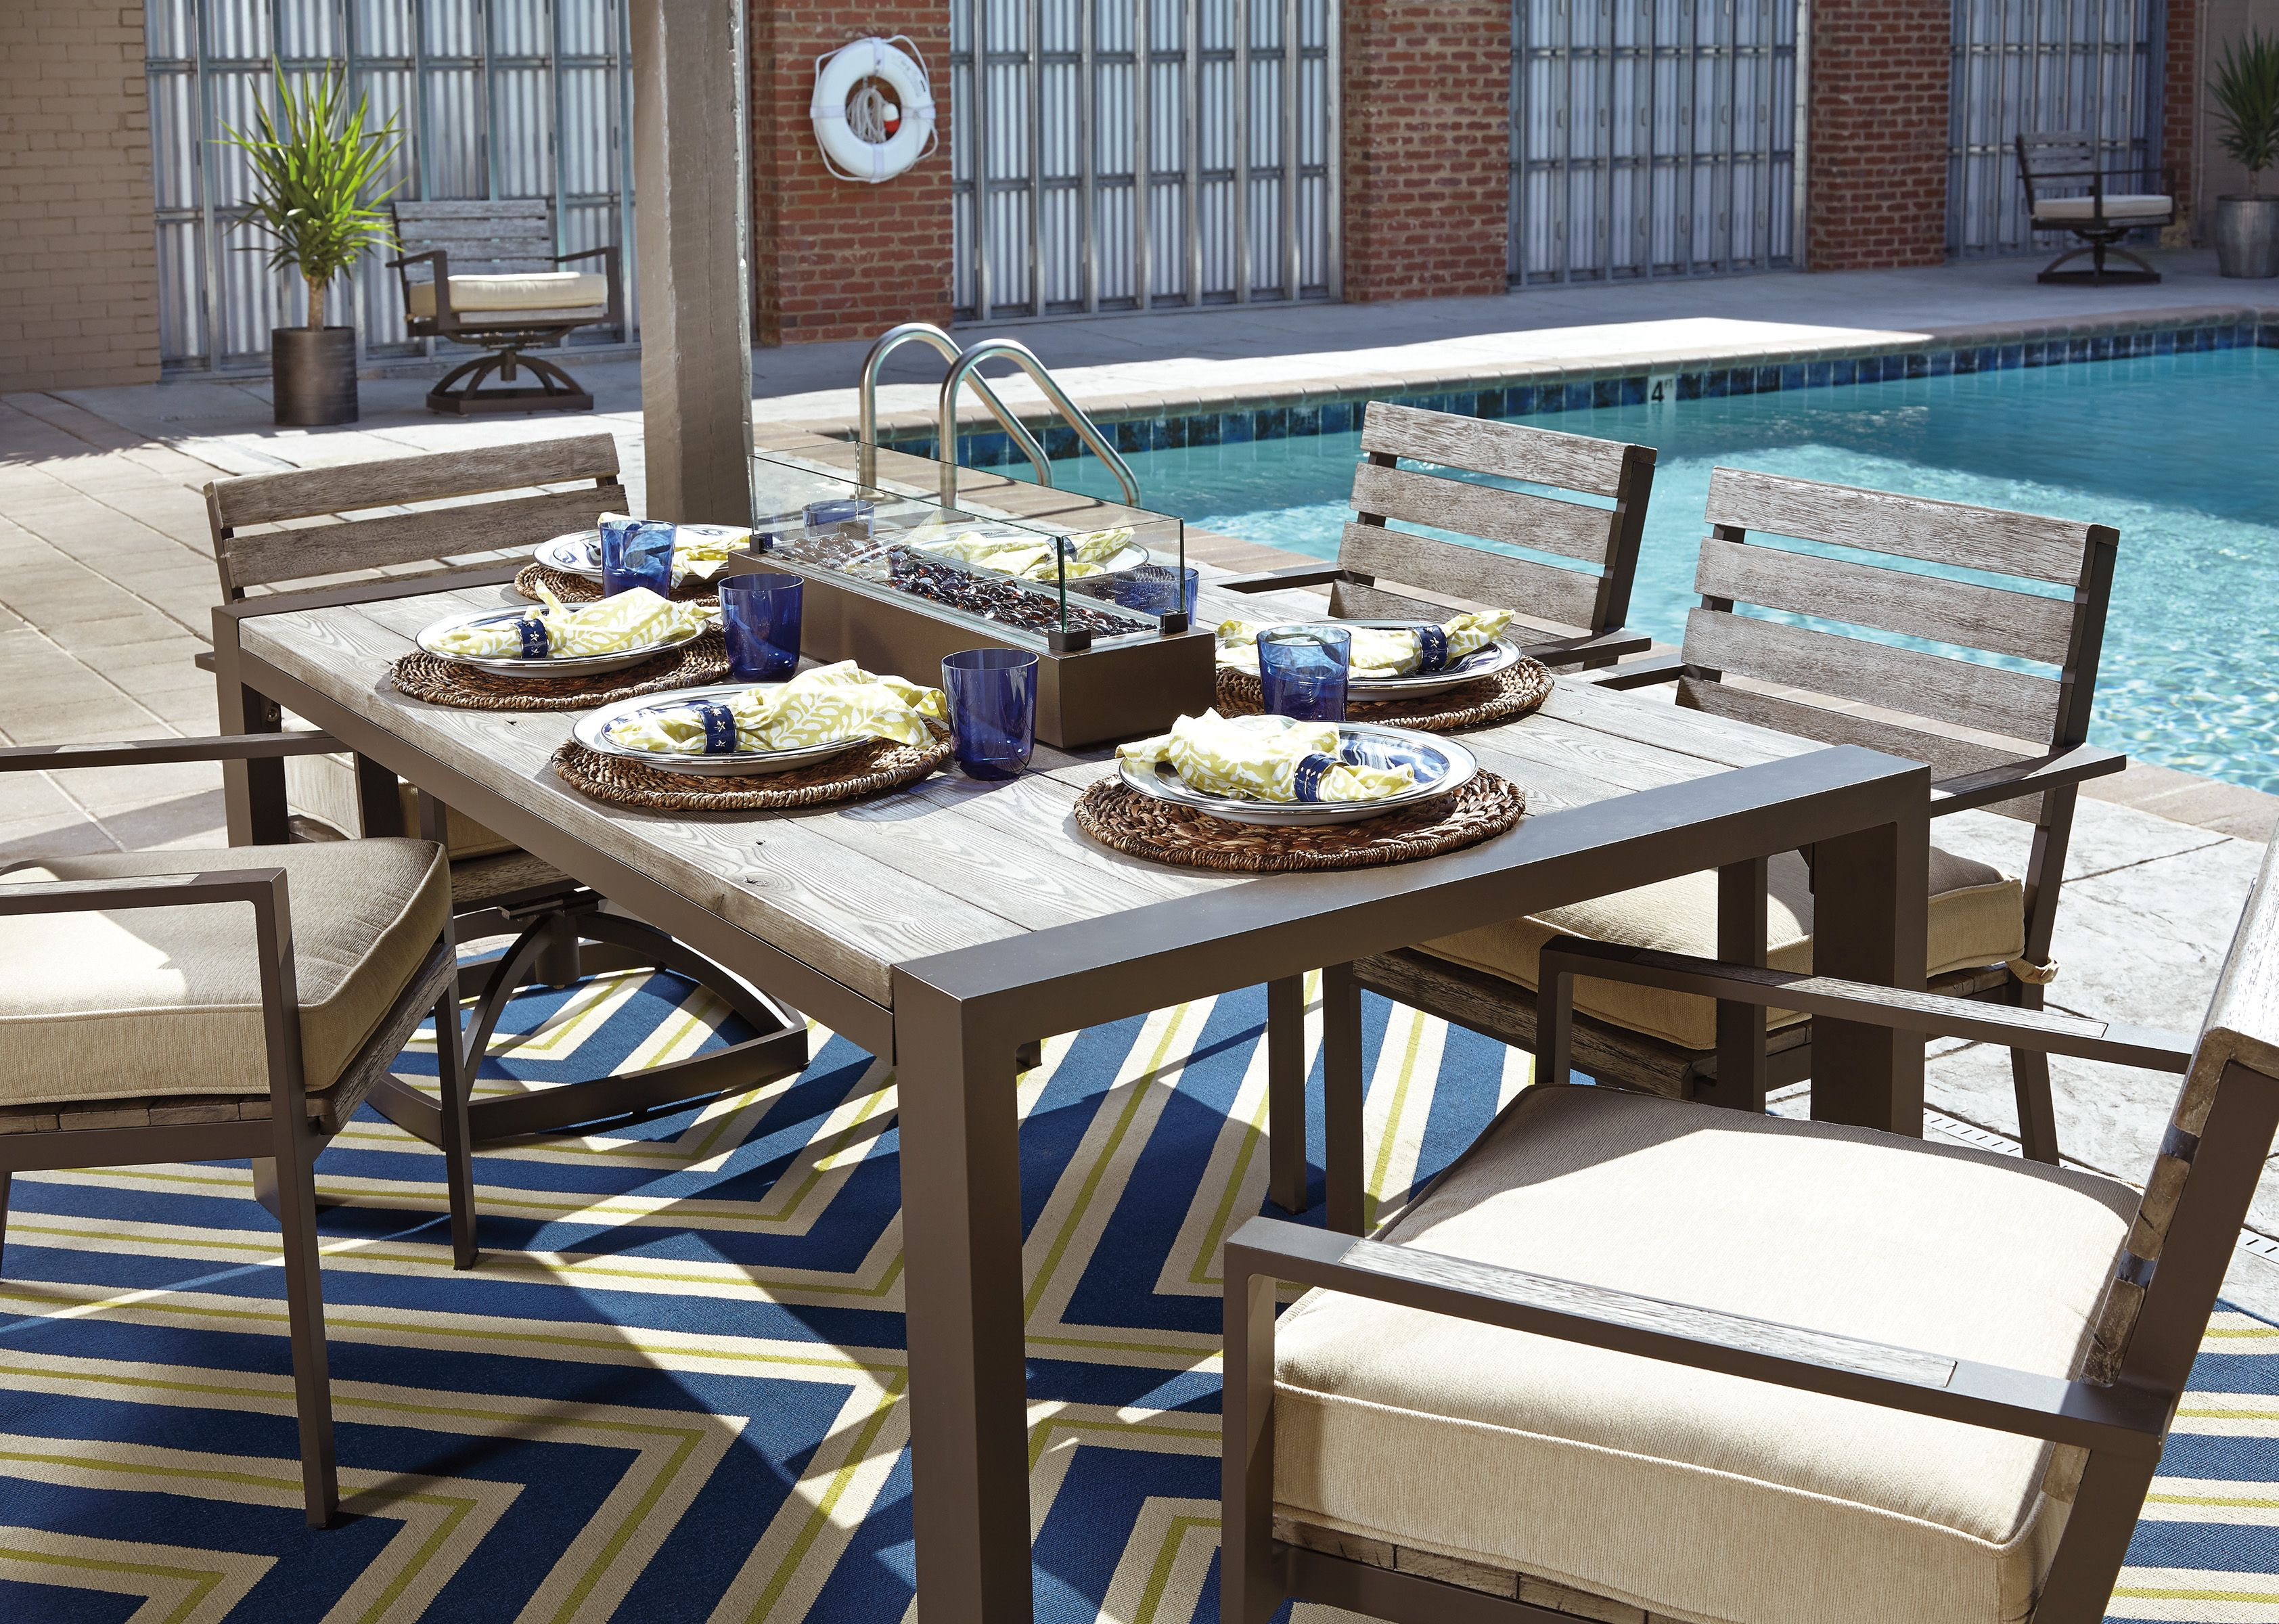 The Ashley Peachstone Has Us Dreaming About Days Relaxing By The Pool Patioideas Outdoor Dining Set Outdoor Furniture Sets Homemakers Furniture